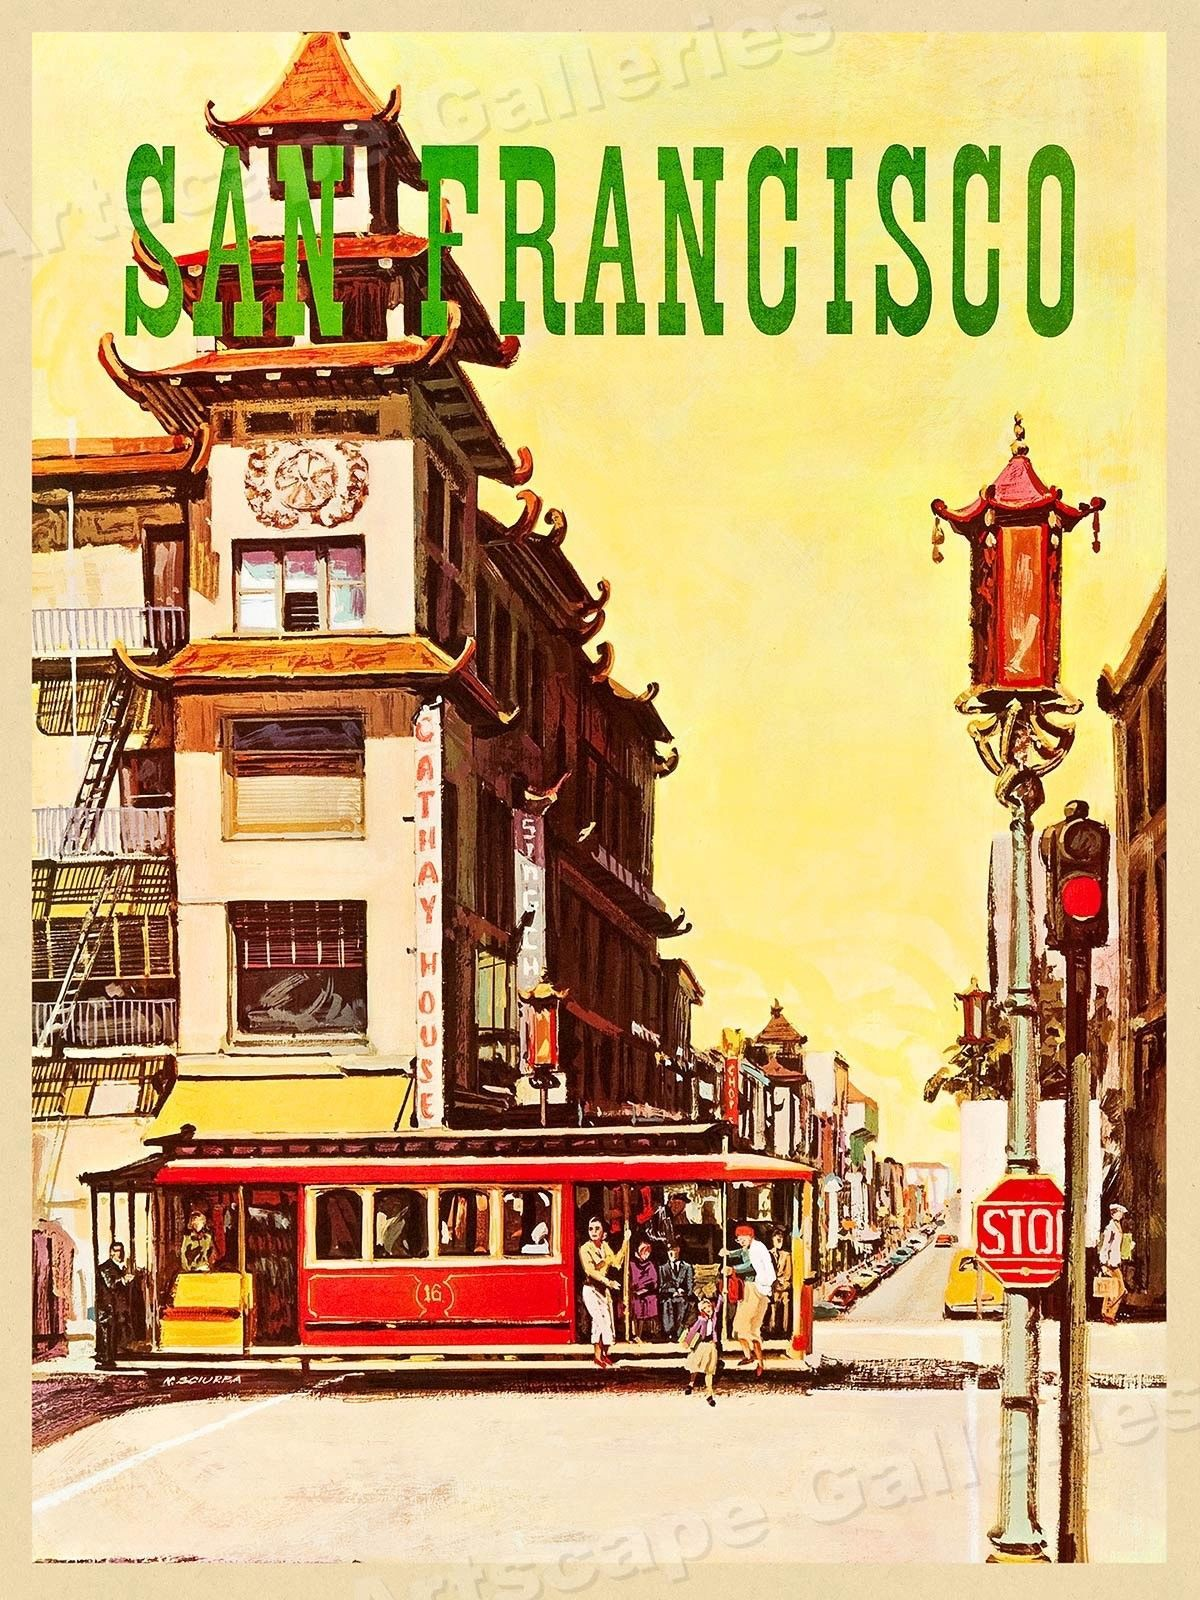 1960/'s San Francisco China Town Vintage Travel Poster 18x24